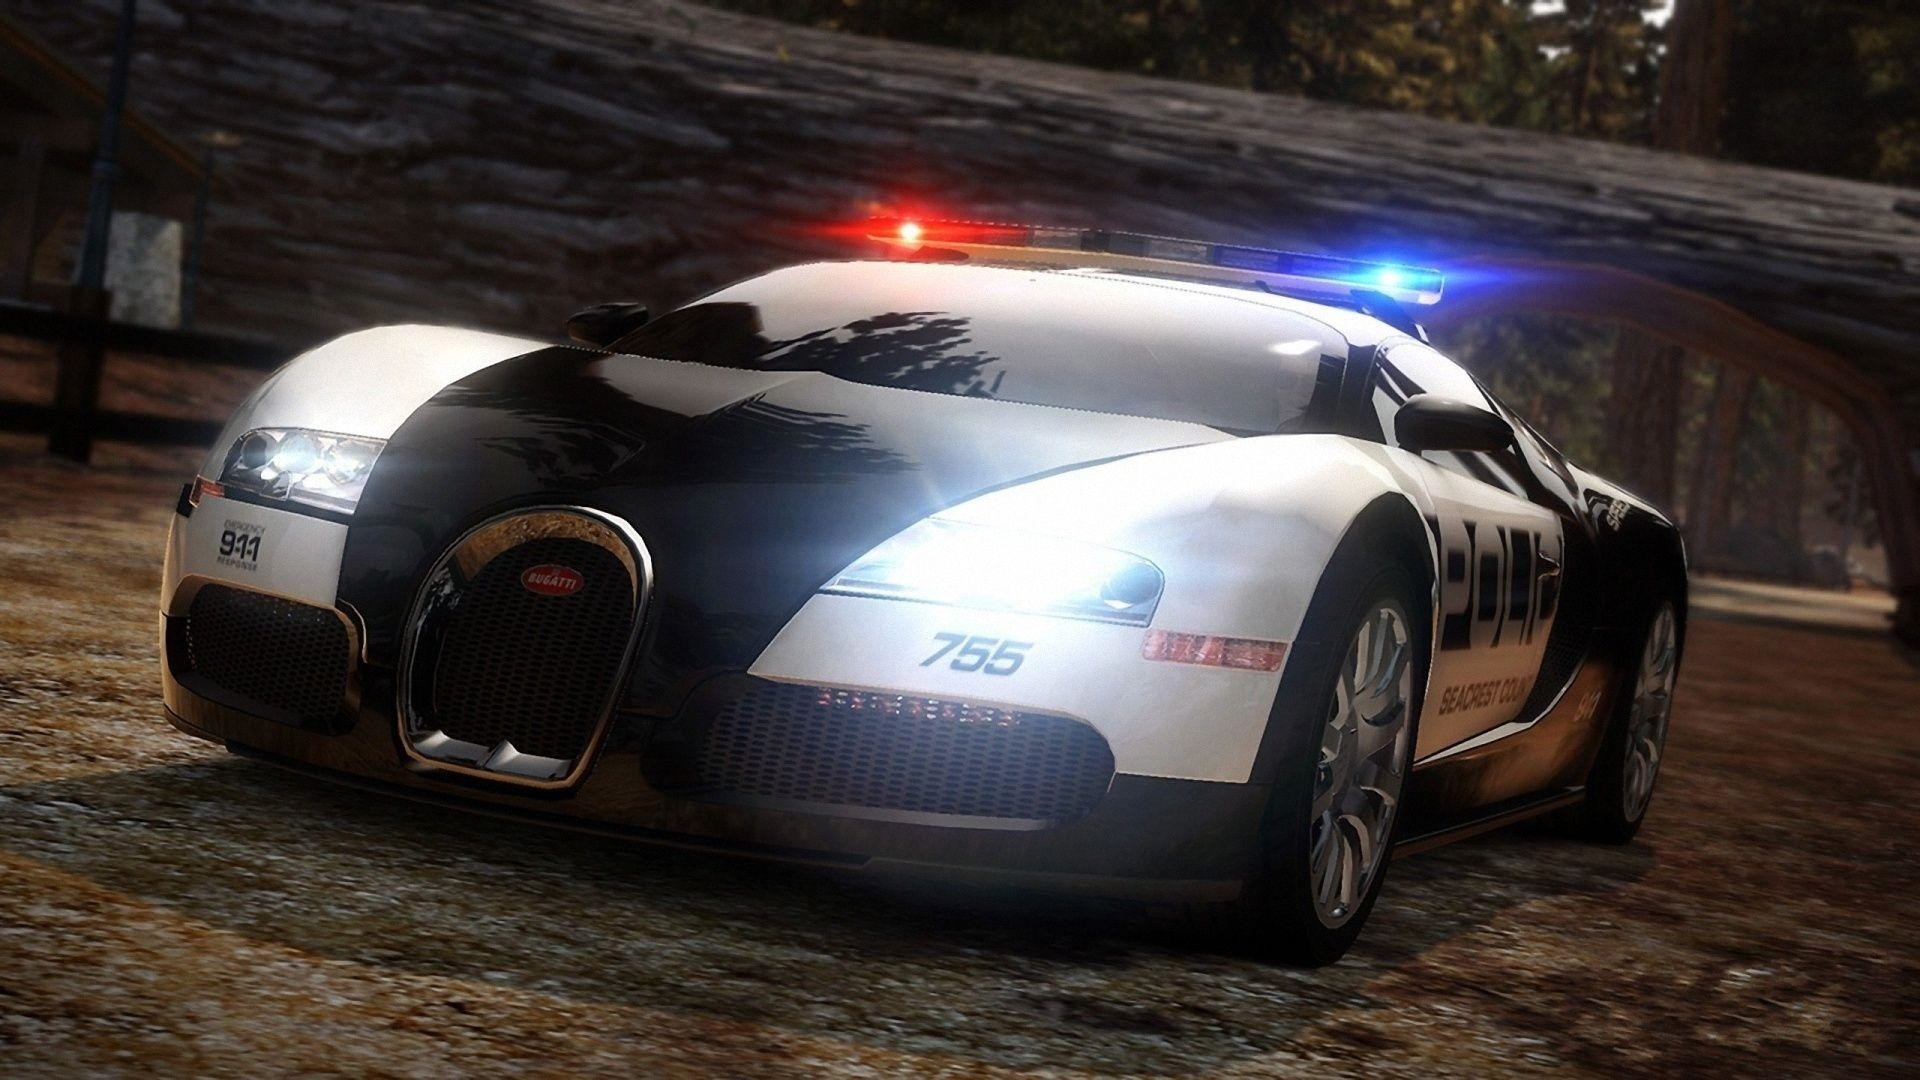 Police Car Wallpaper Backgrounds – WallpaperSafari